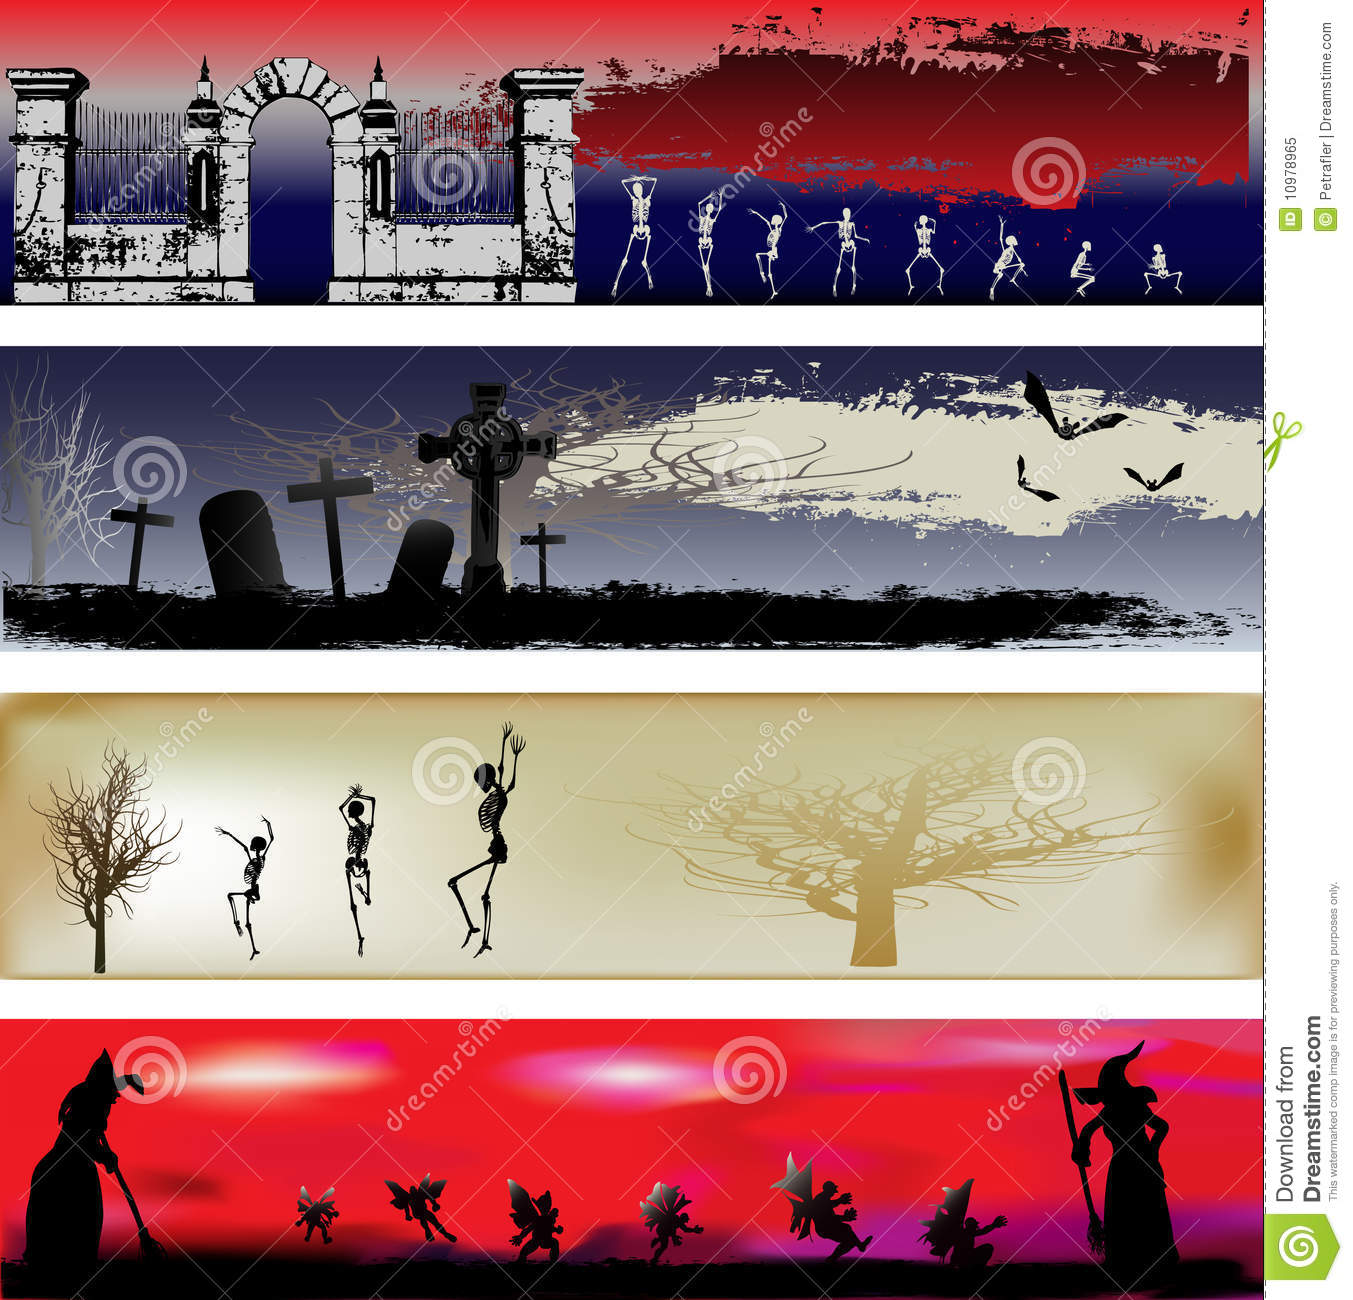 halloween web banner templates stock vector illustration of scary